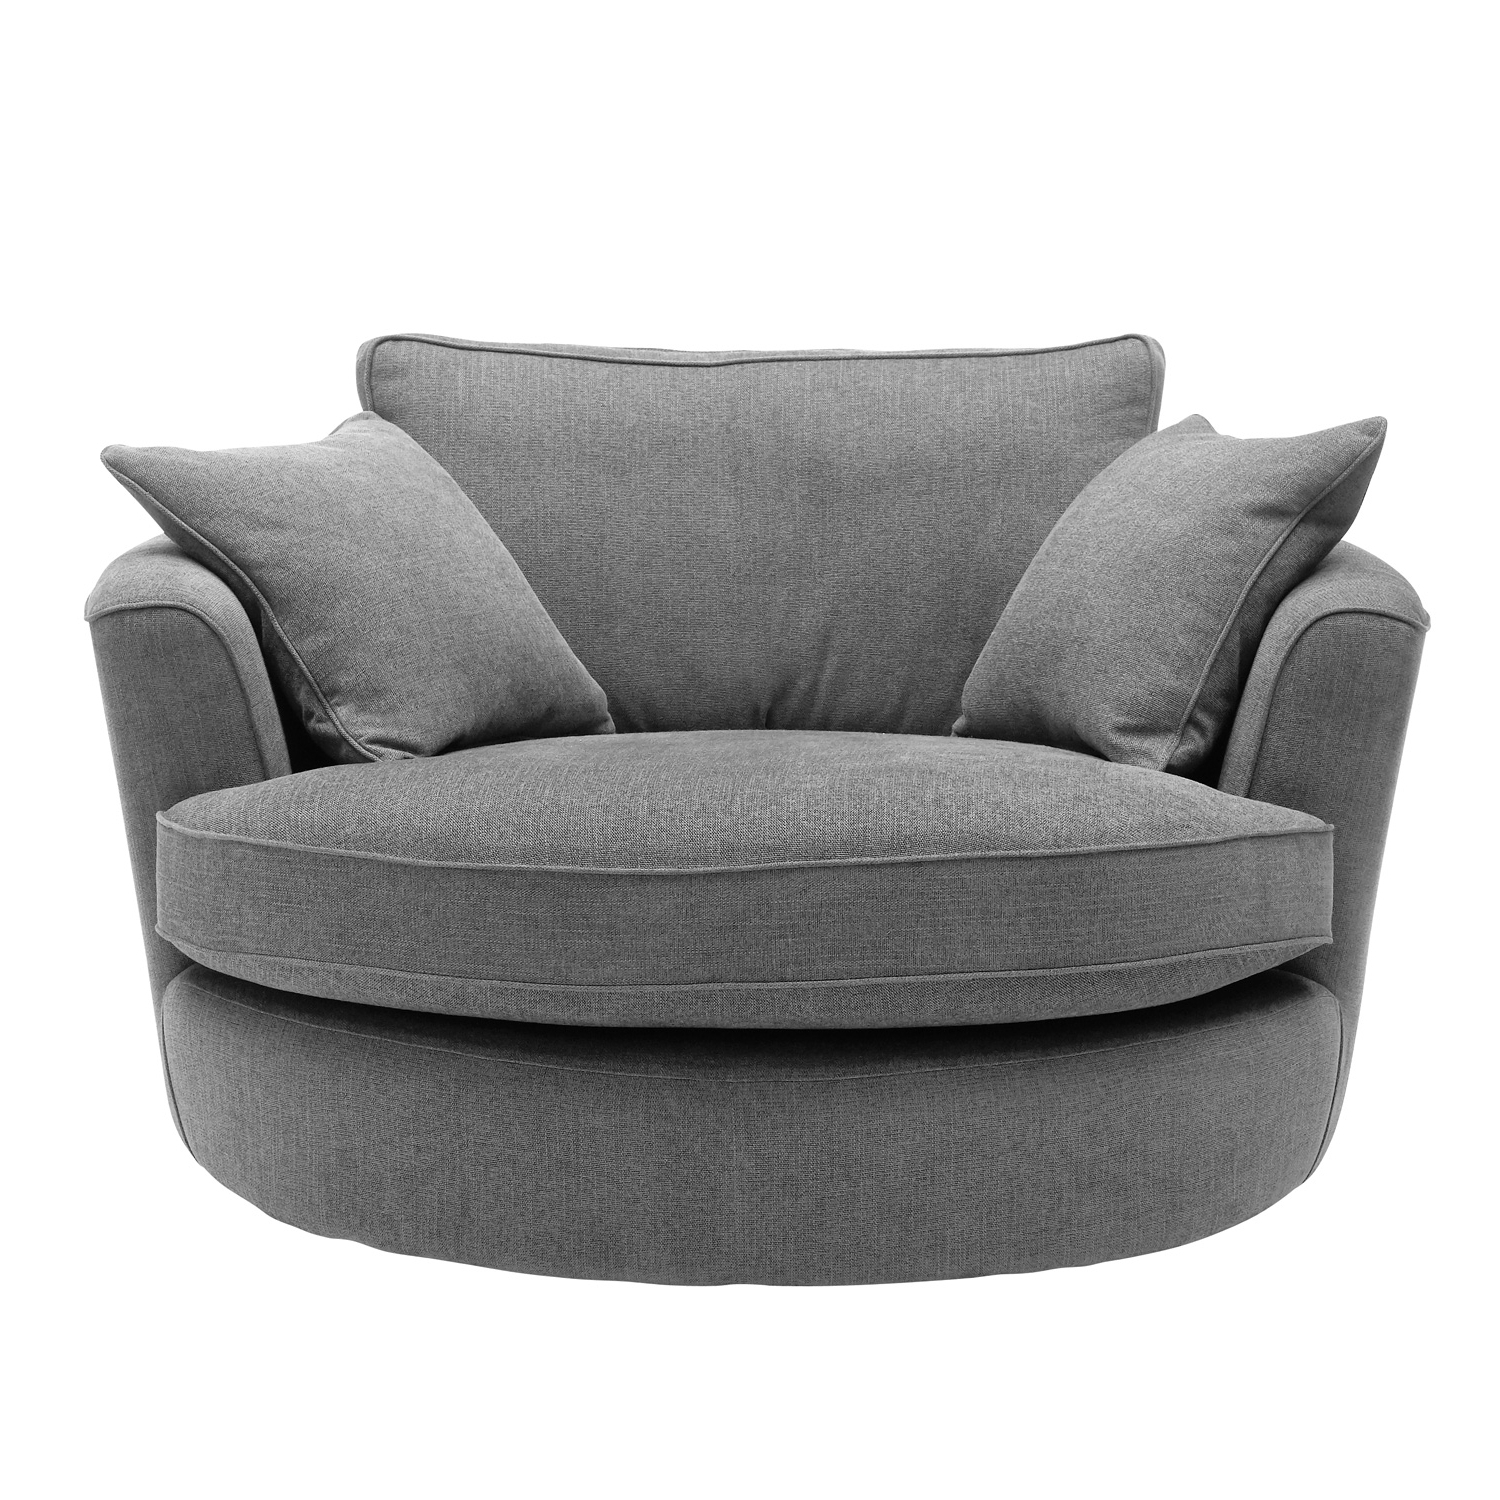 Round Sofa Chairs Regarding Newest Room Sets Gray Couch Arrangement Dark Green Velvet Round For Curved (View 14 of 20)